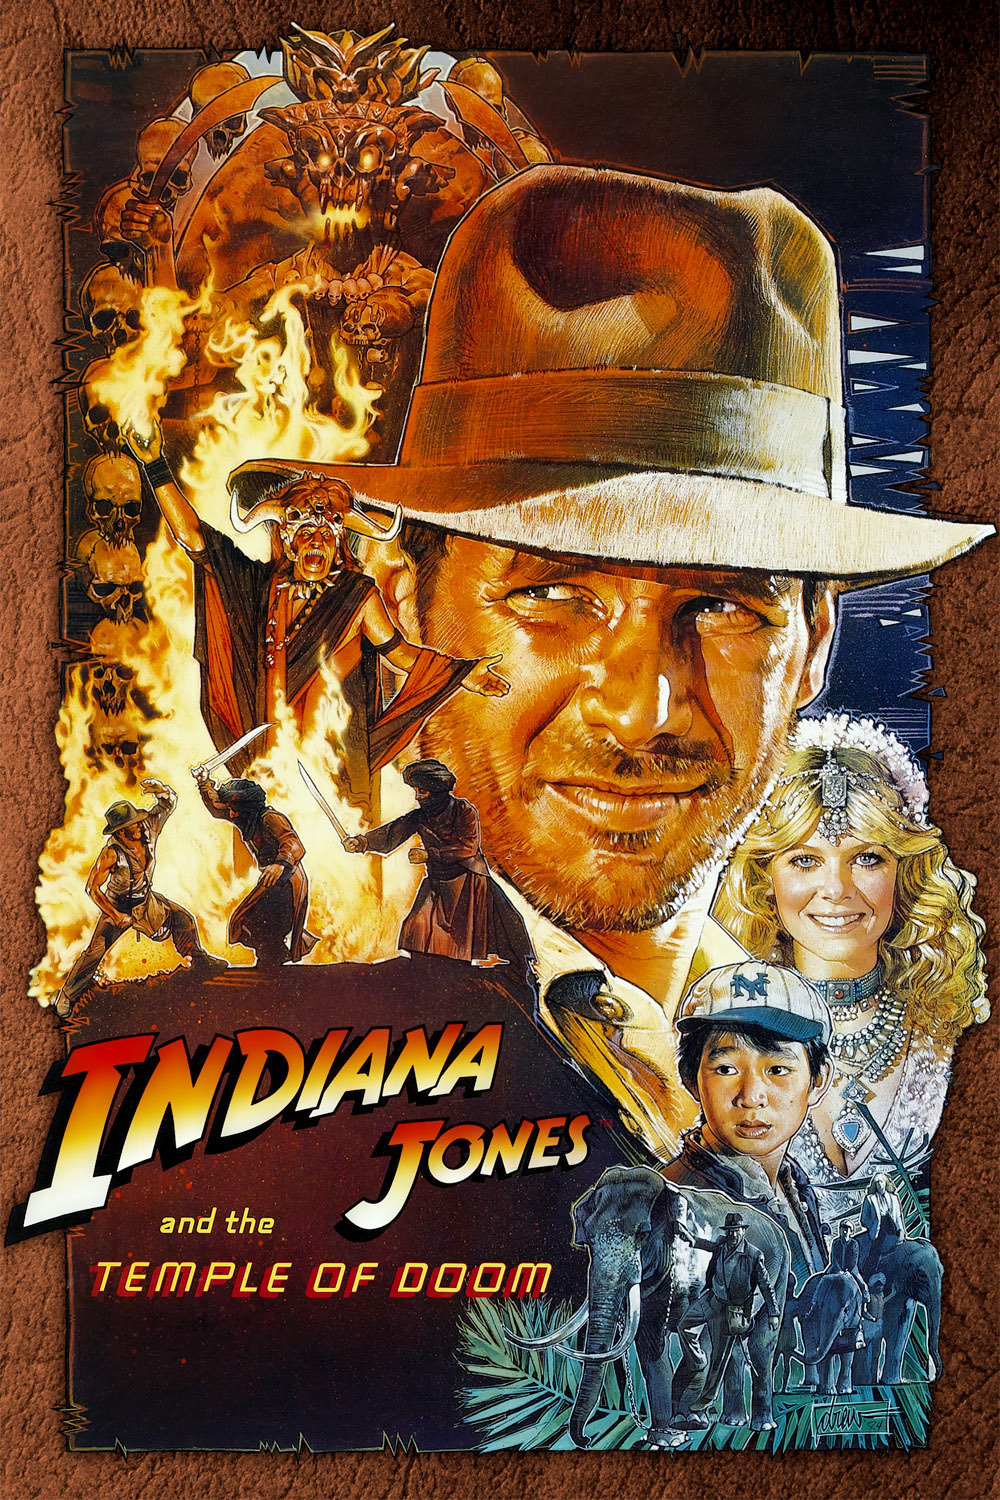 Image result for indiana jones and the temple of doom poster